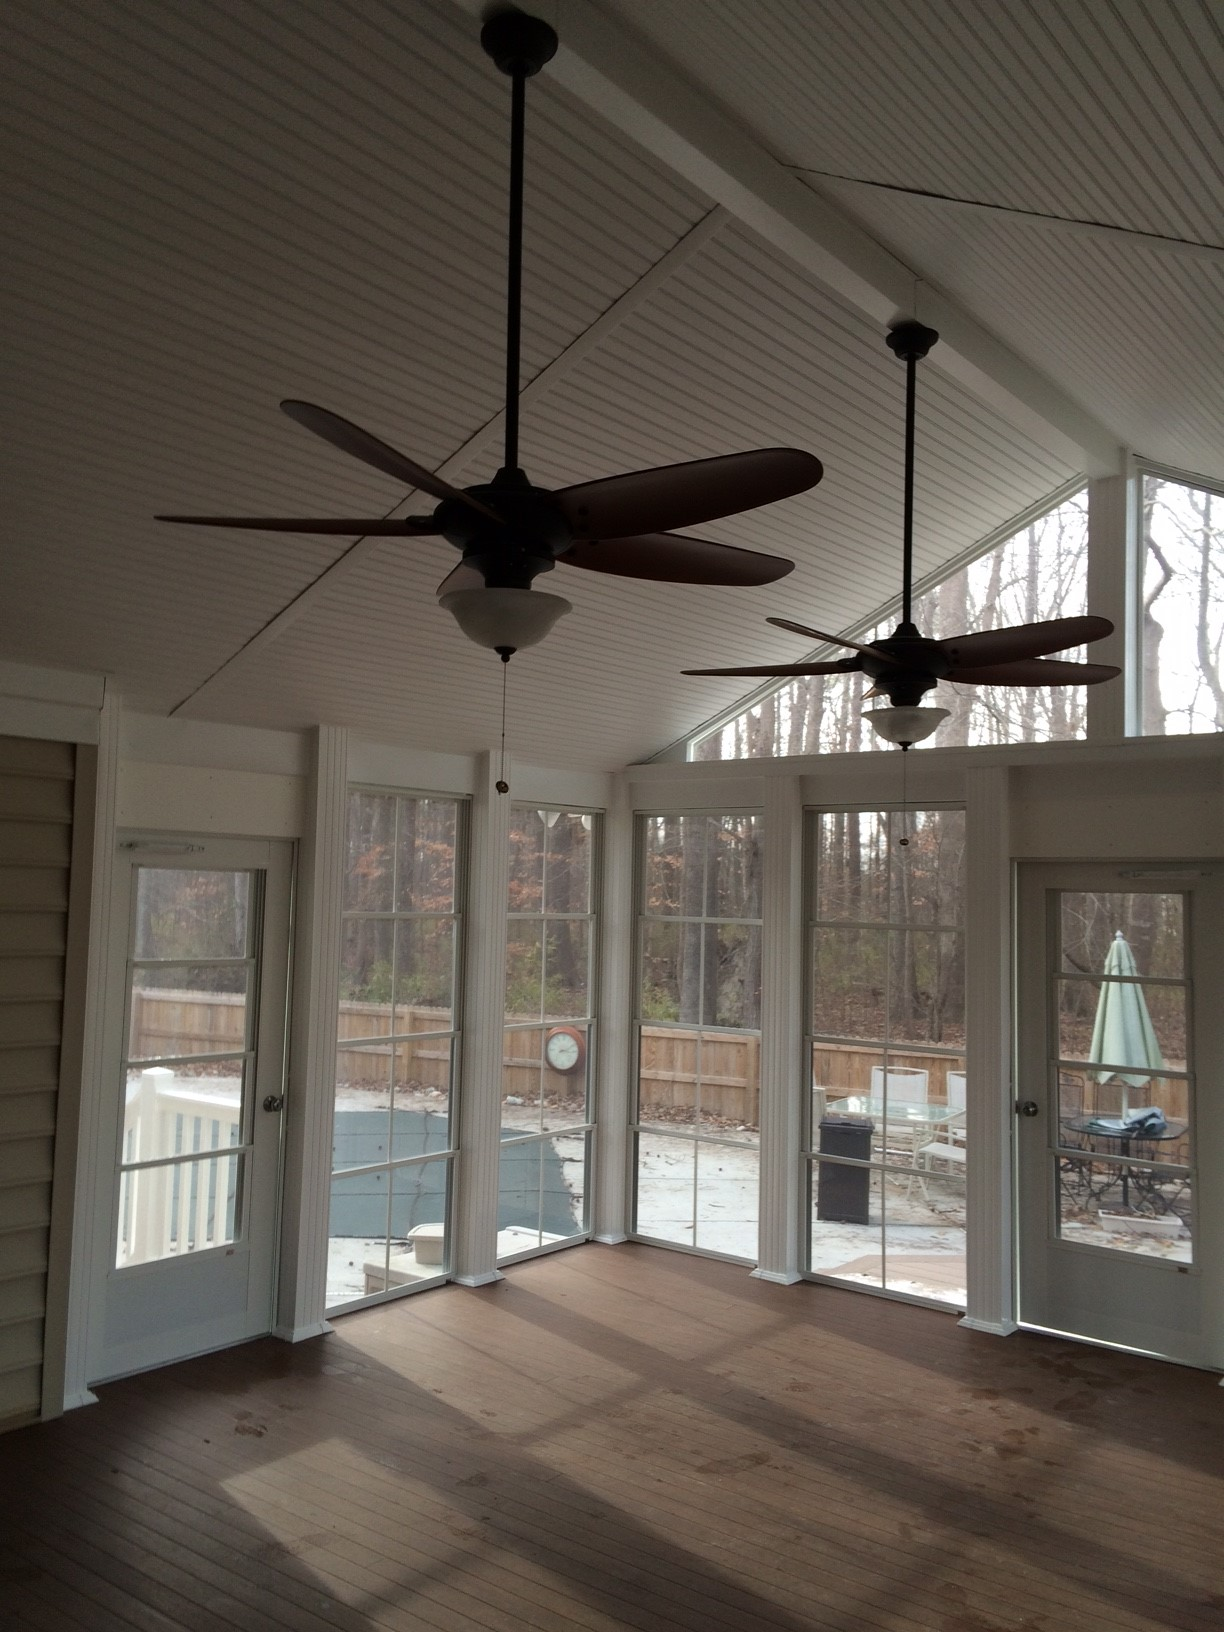 Sun room porch with ceiling fans